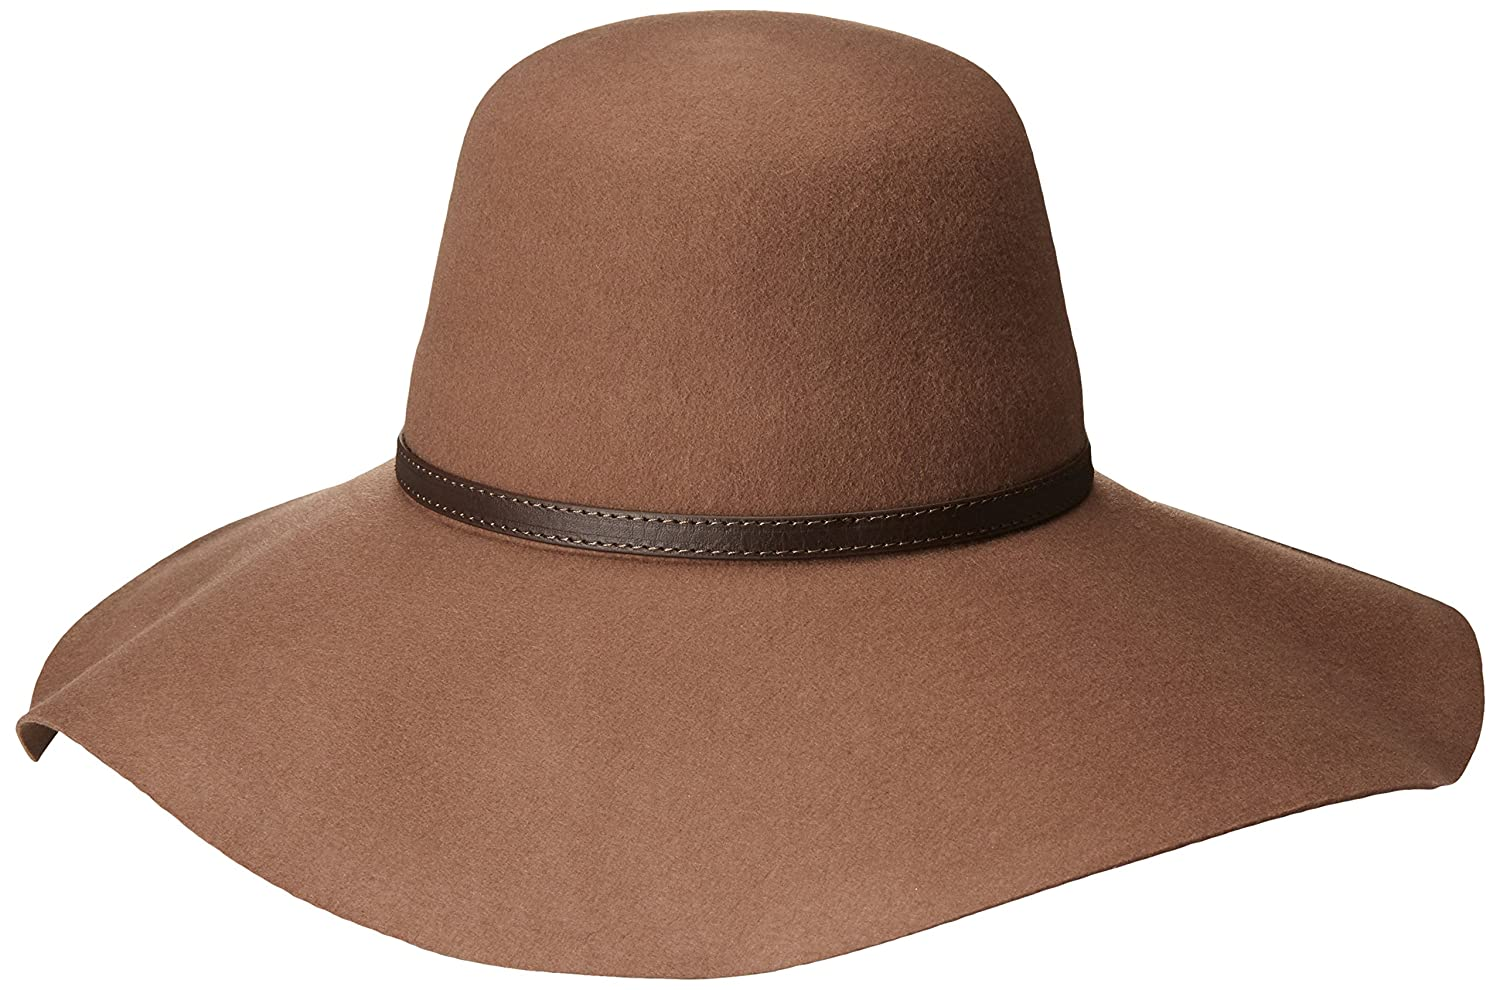 43d60a0a Goorin Bros. Women's Mia Wide Brim Floppy Hat with Faux Leather Band at  Amazon Women's Clothing store: